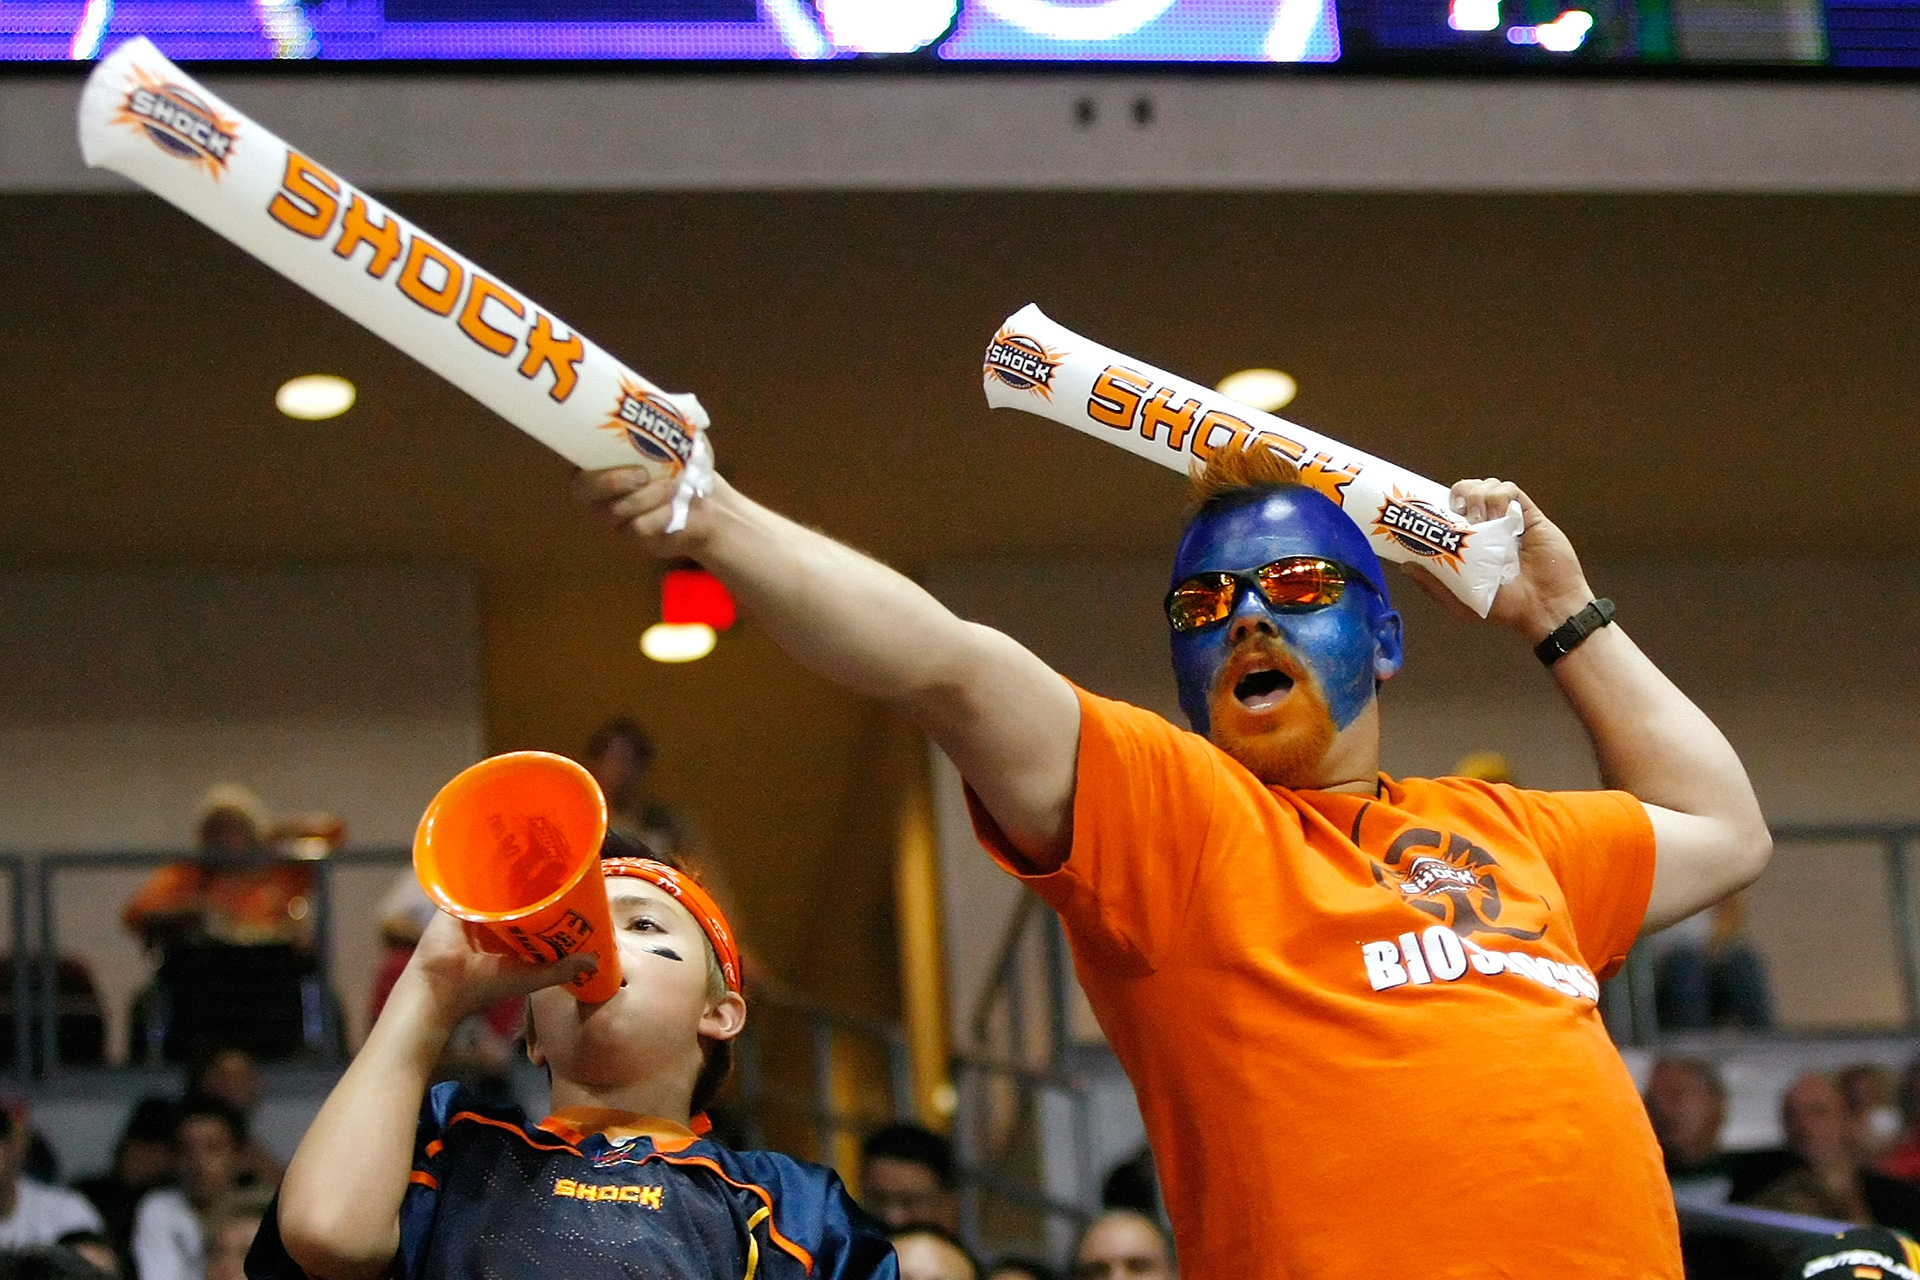 LAS VEGAS - AUGUST 22:  Spokane Shock fans Dakota Bauge (L) and Dan Bauge of Wahington, celebrate after the Shock scored a touchdown against the Wilkes-Barre/Scranton Pioneers during the AFL2 ArenaCup 10 at the Orleans Arena August 22, 2009 in Las Vegas, Nevada. The Shock defeated the Pioneers 74-27.  (Photo by Ethan Miller/Getty Images) *** Local Caption *** Dakota Bauge;Dan Bauge